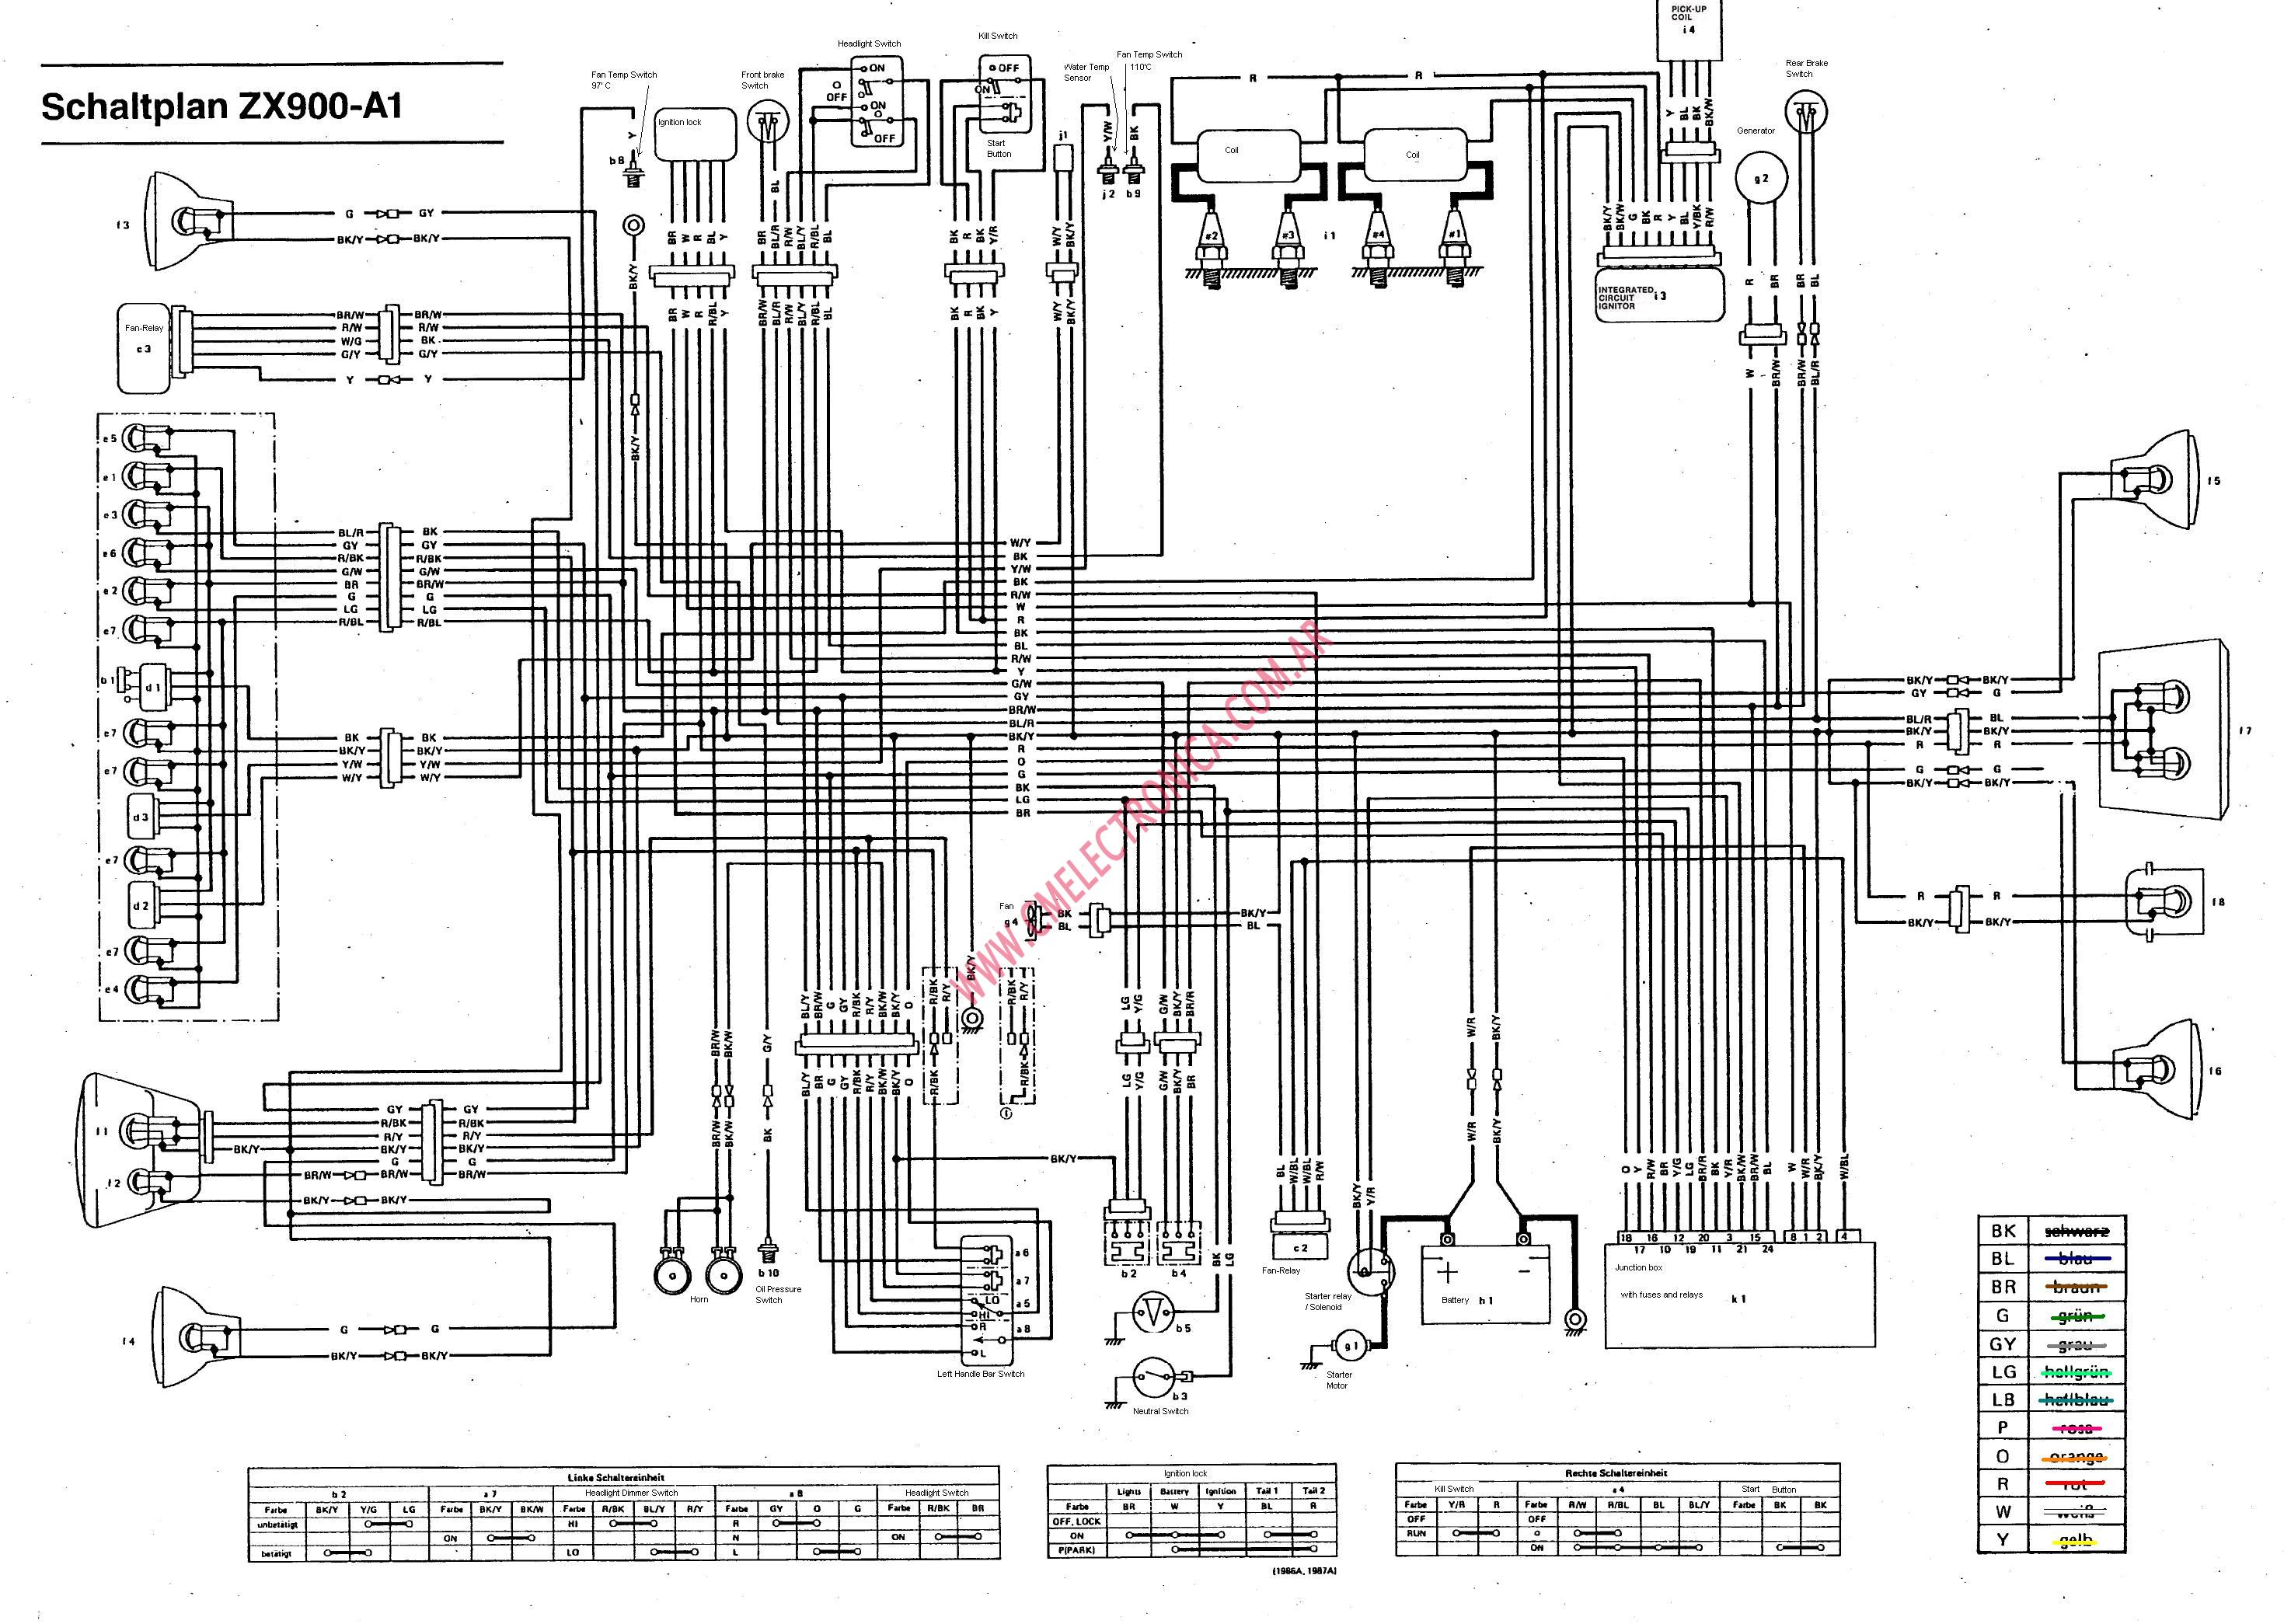 1995 kawasaki zx6r wiring diagram wiring library Kubota RTV 1100 Oil Filter 1995 kawasaki 900 zxi ignition diagram wiring schematic schematics rh seniorlivinguniversity co zxr